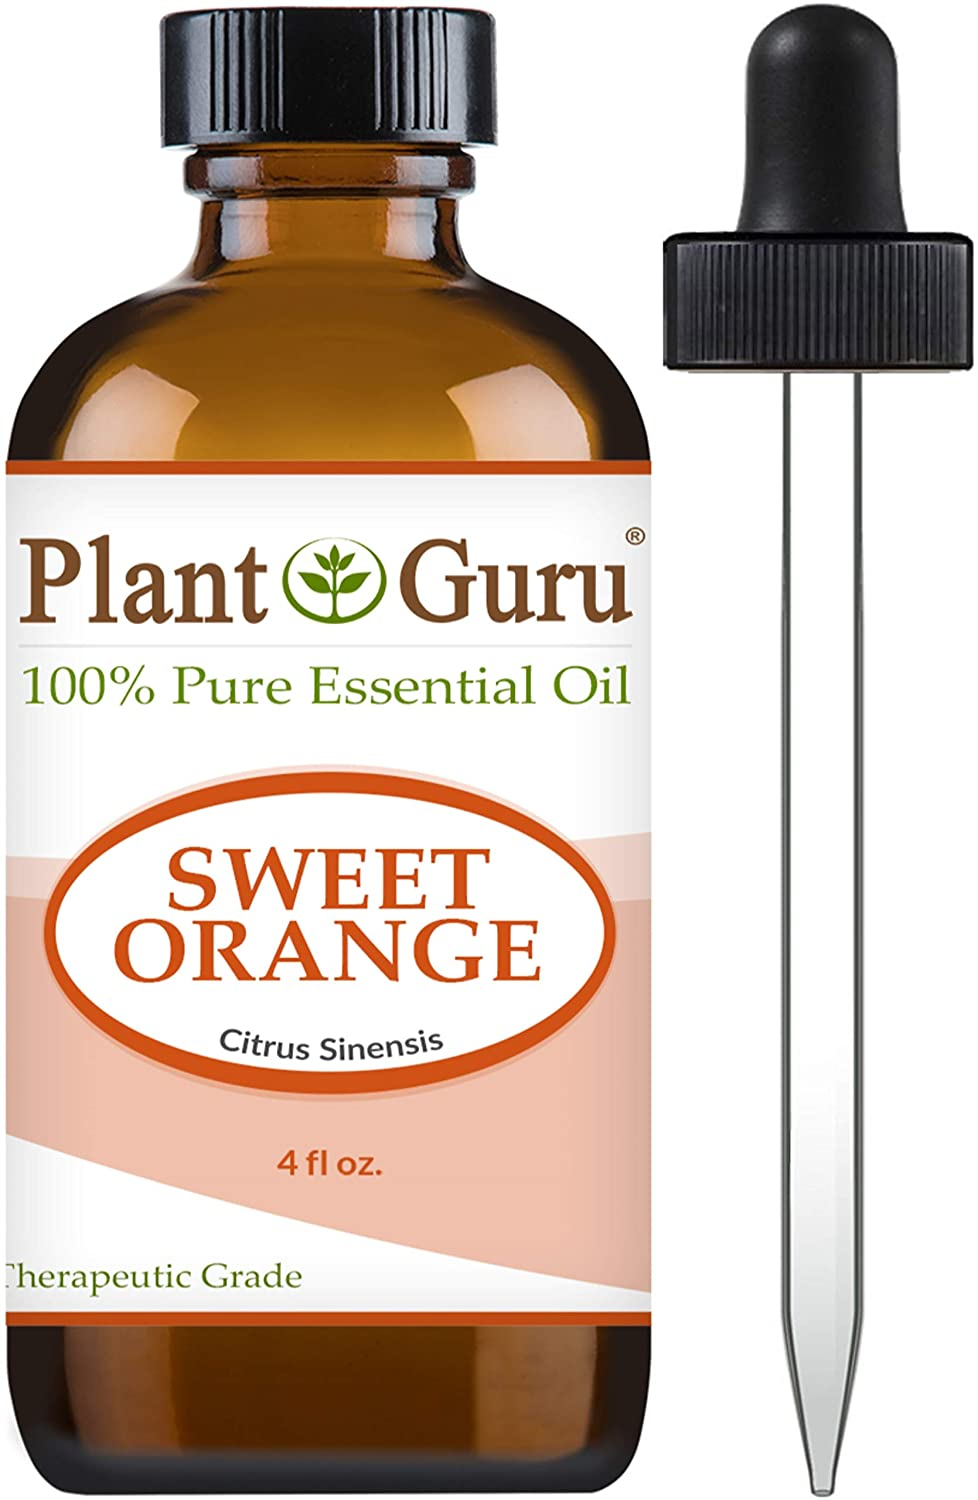 Sweet Orange Essential Oil HUGE 4 oz Therapeutic Grade 100% Pure & Natural With Glass Dropper by Plant Guru B00UZOZ5S8